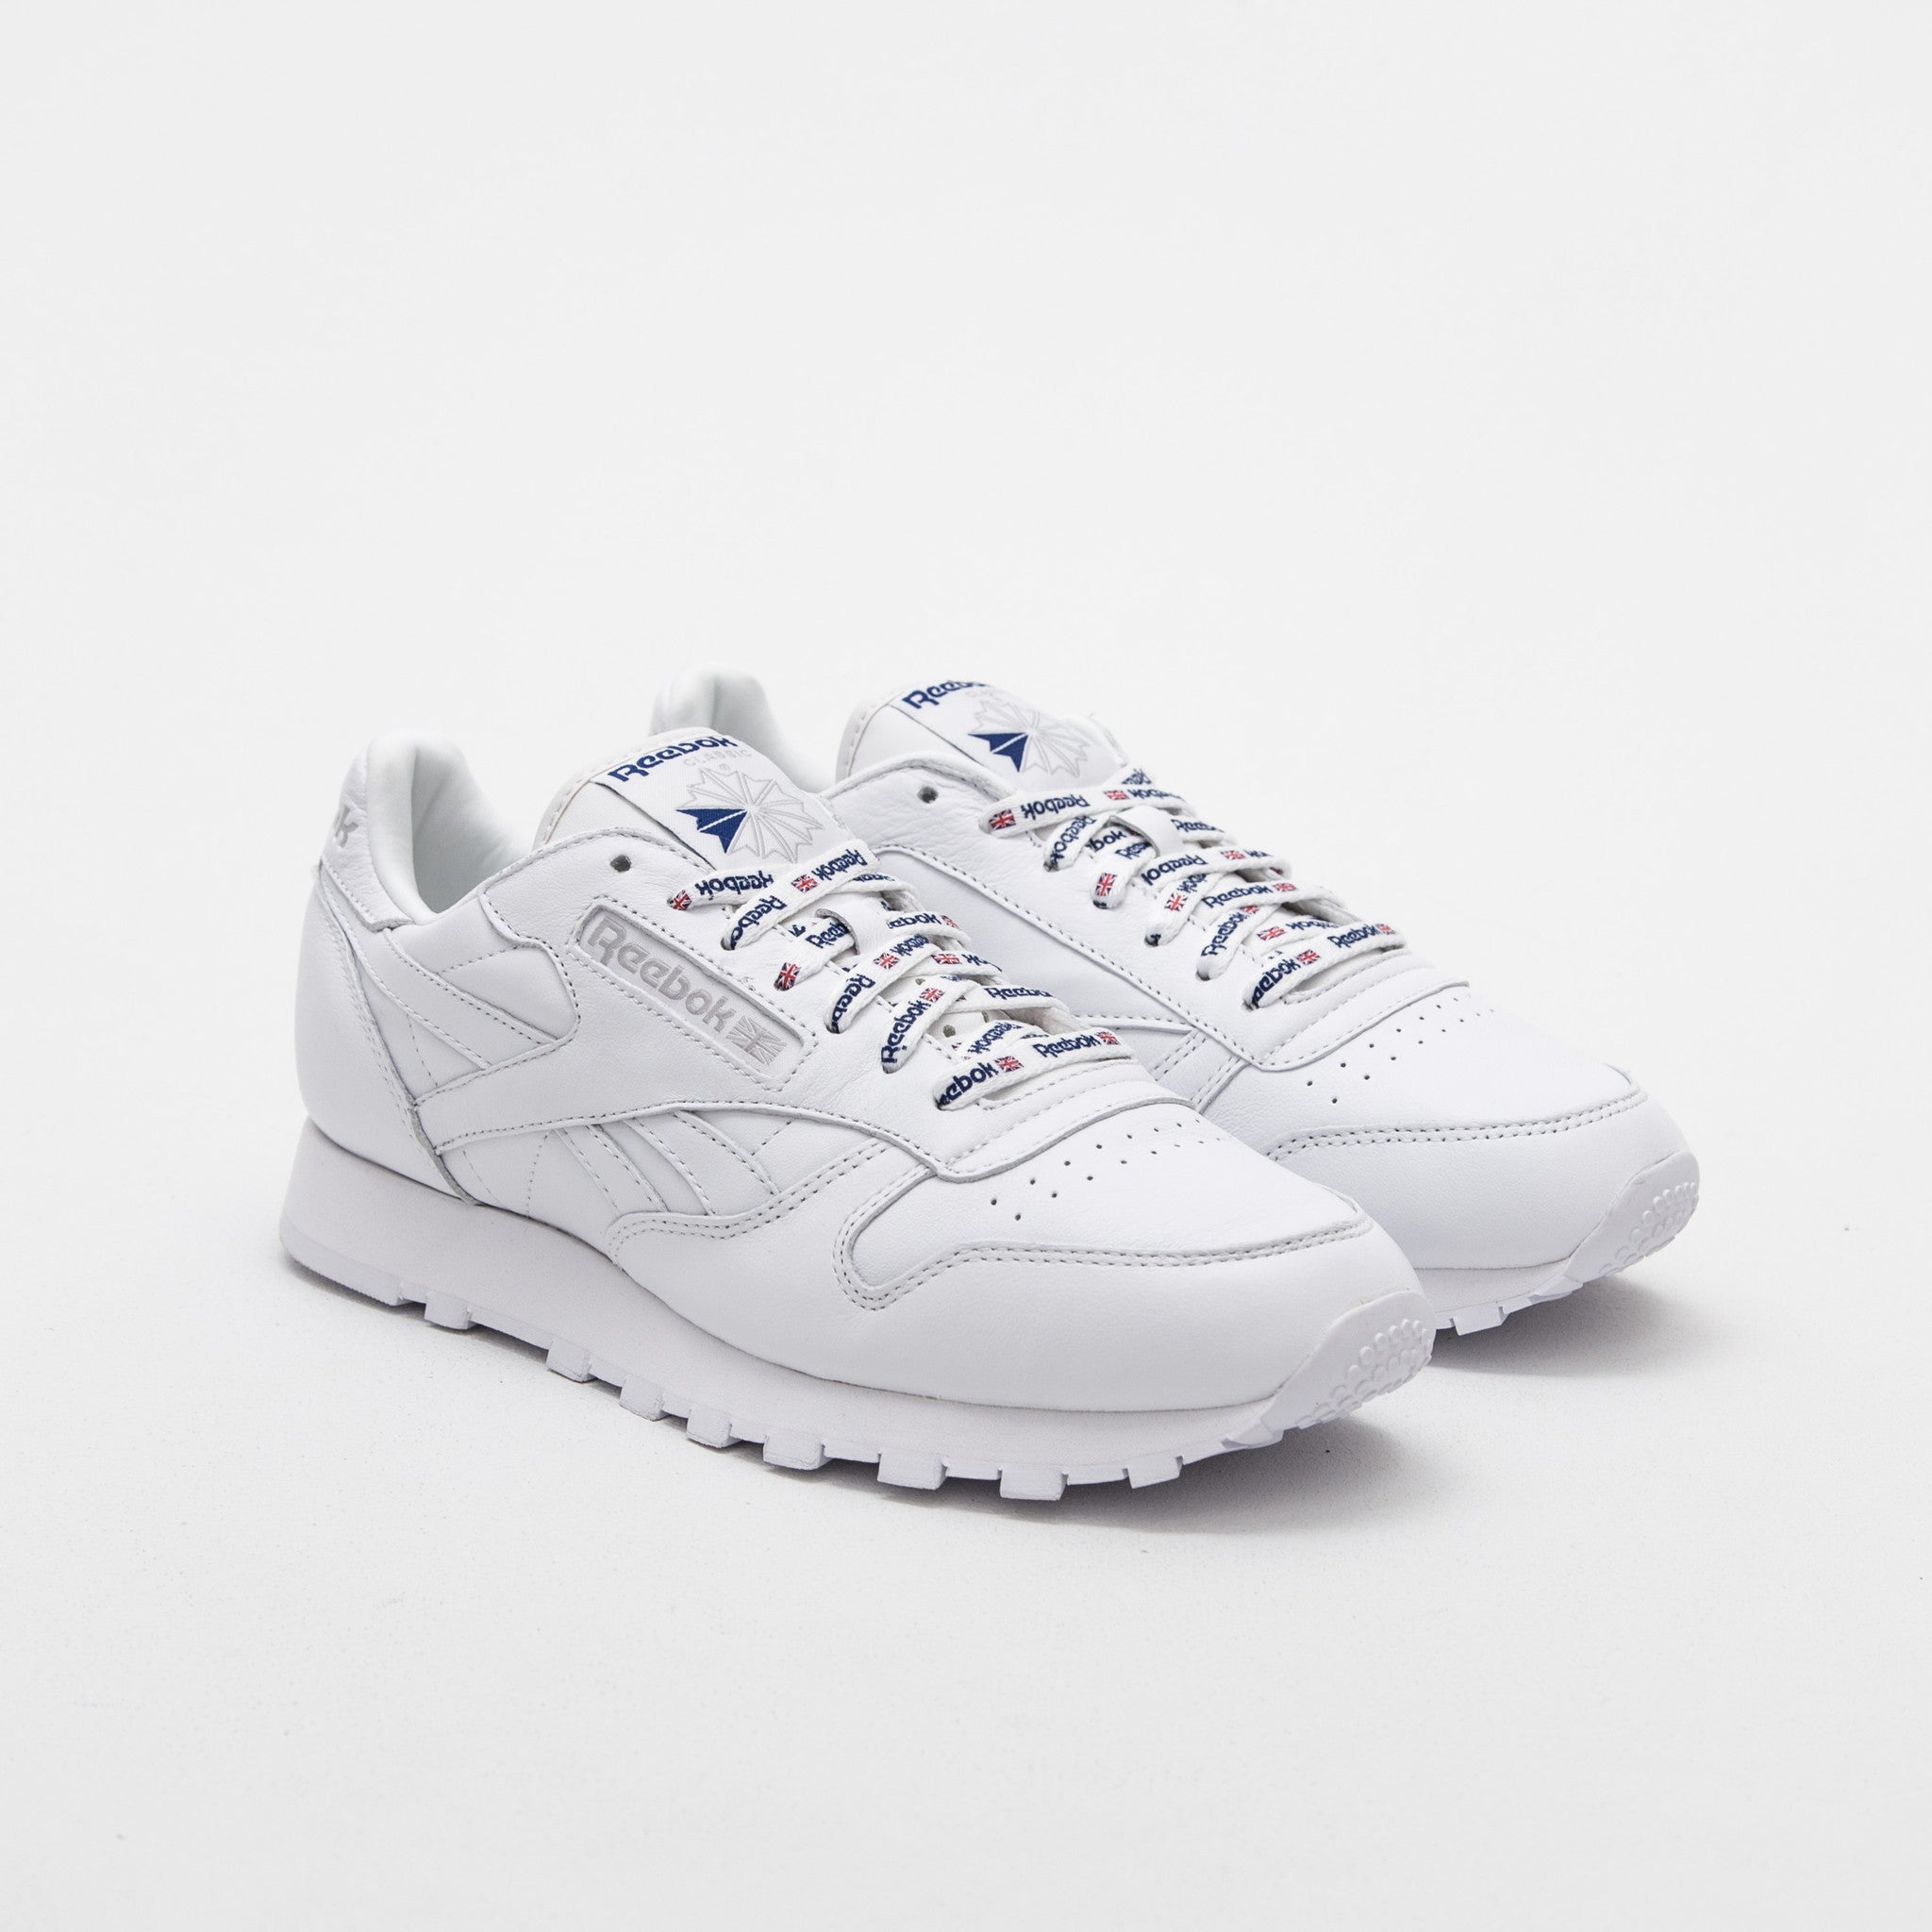 CL Leather 1895 - White / Collegiate Royal / Steel